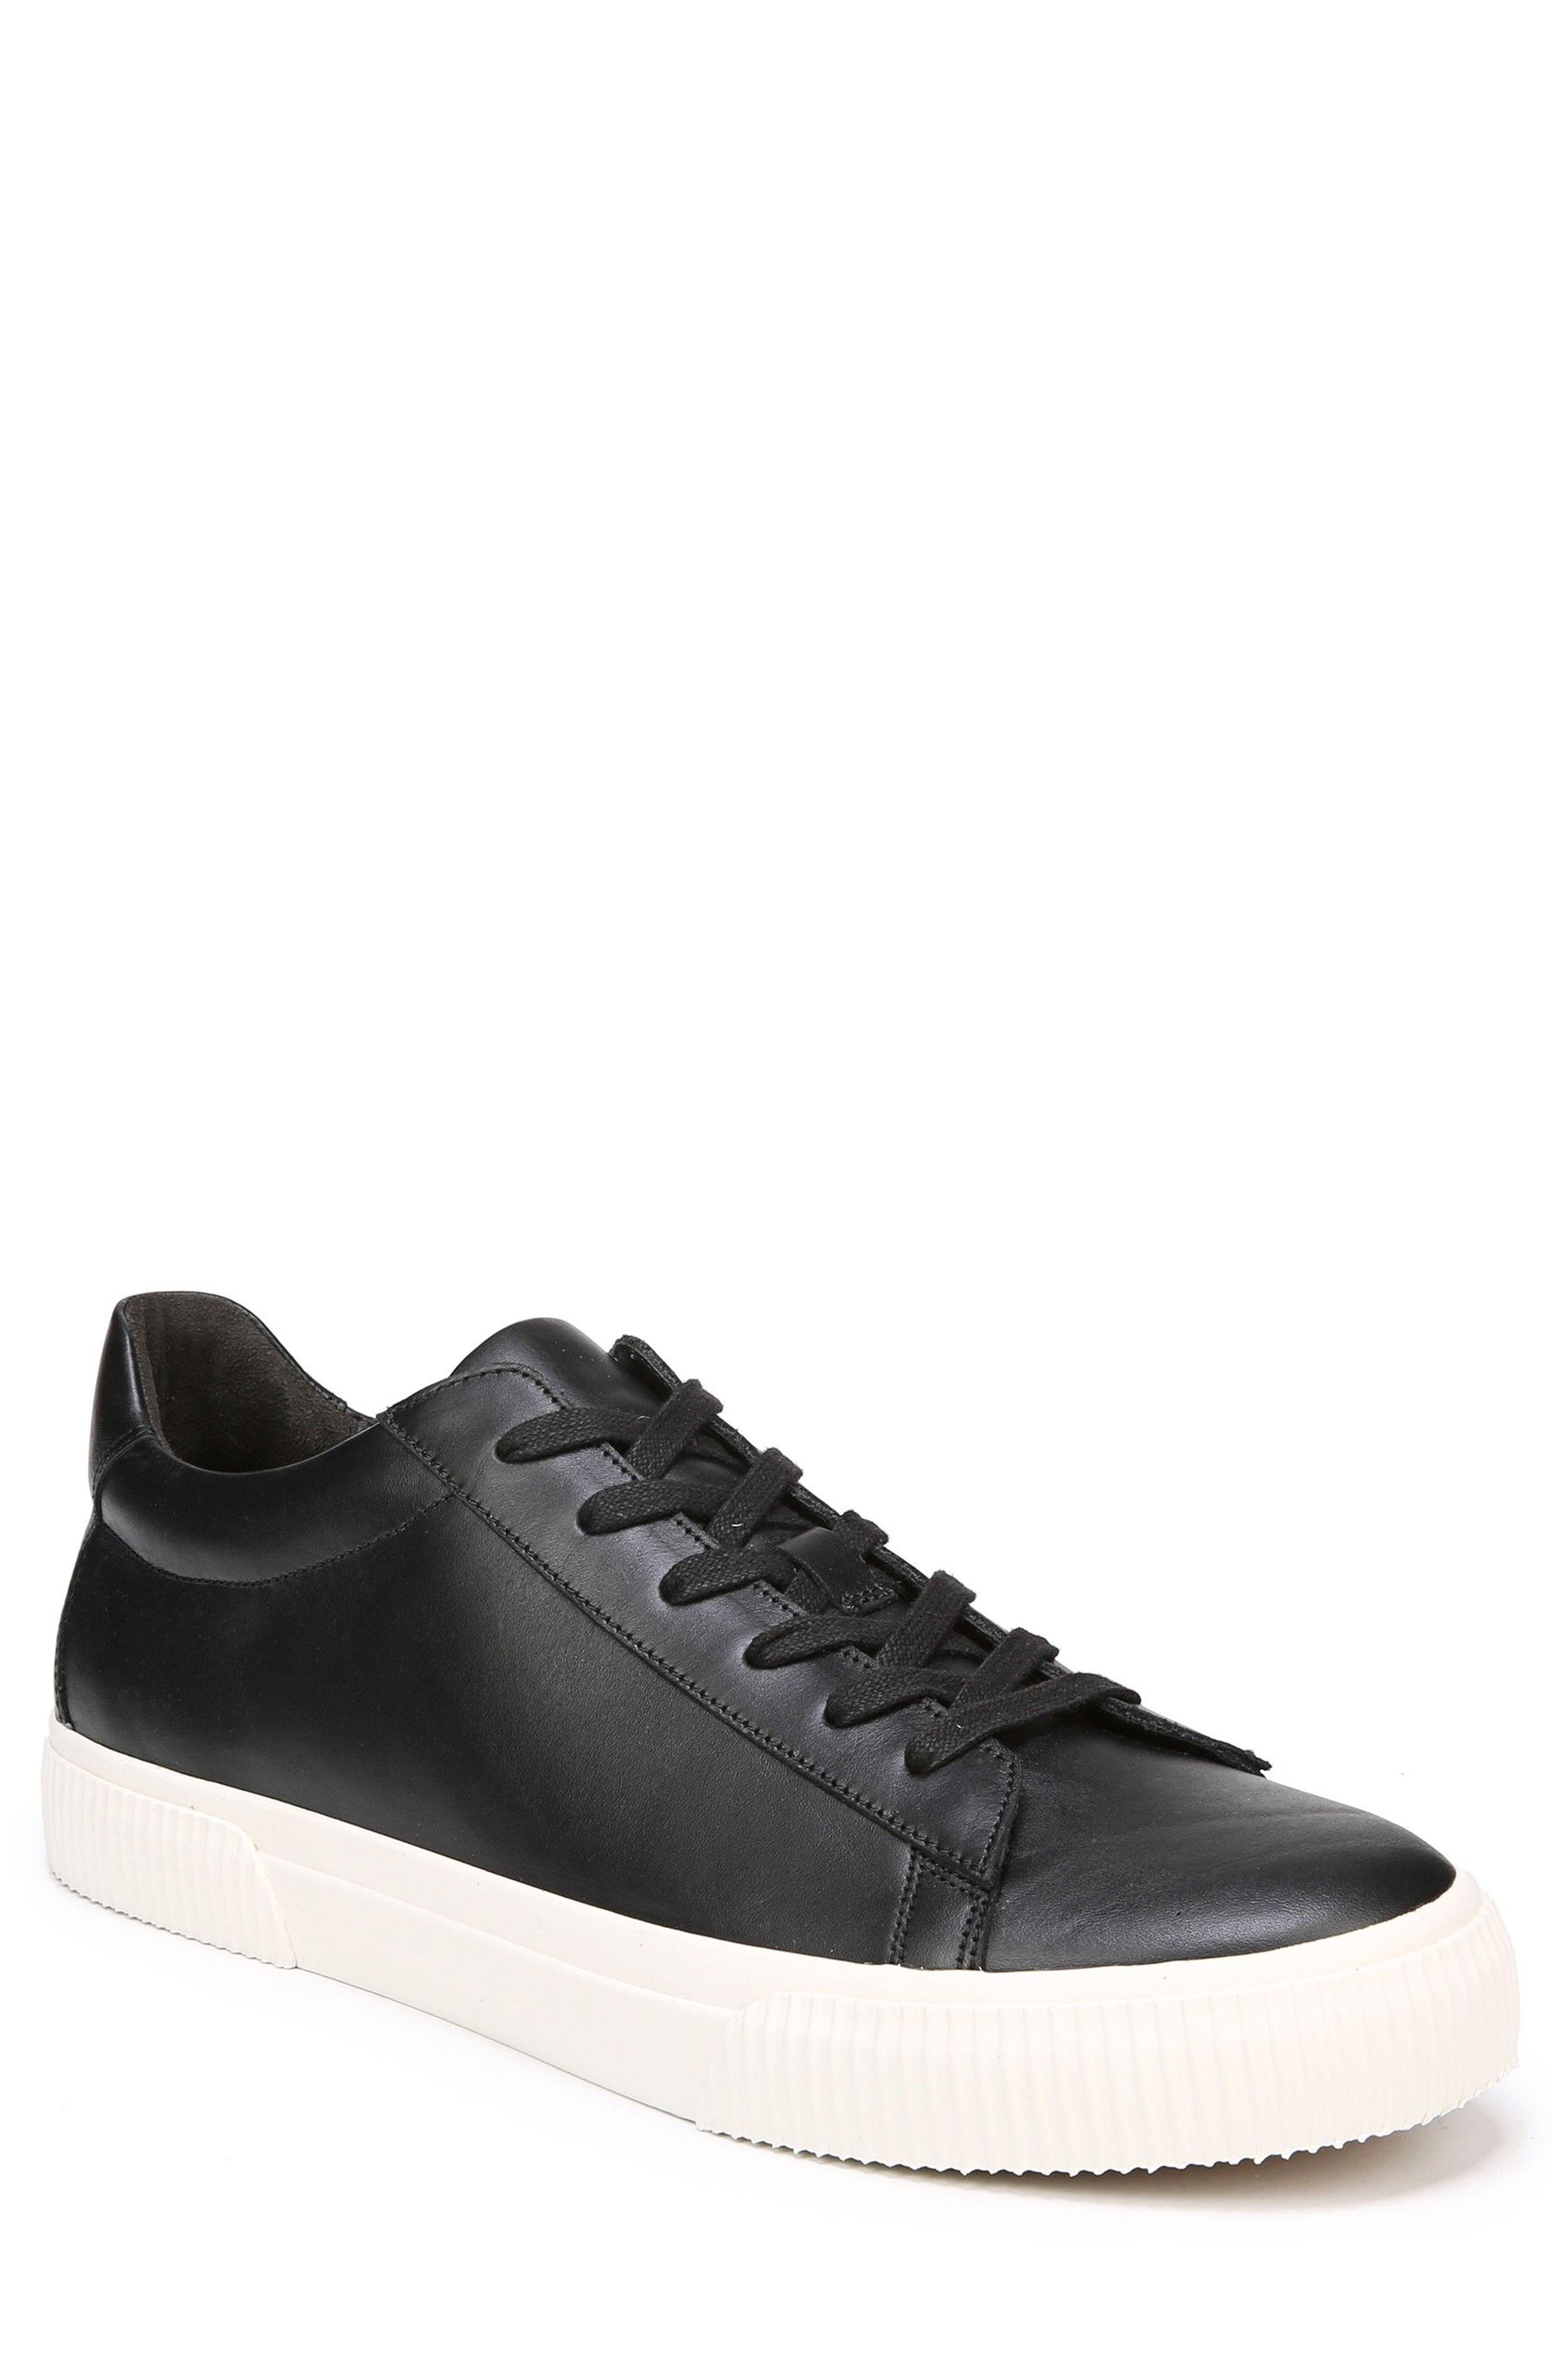 Kurtis Low Top Sneaker,                             Main thumbnail 1, color,                             001